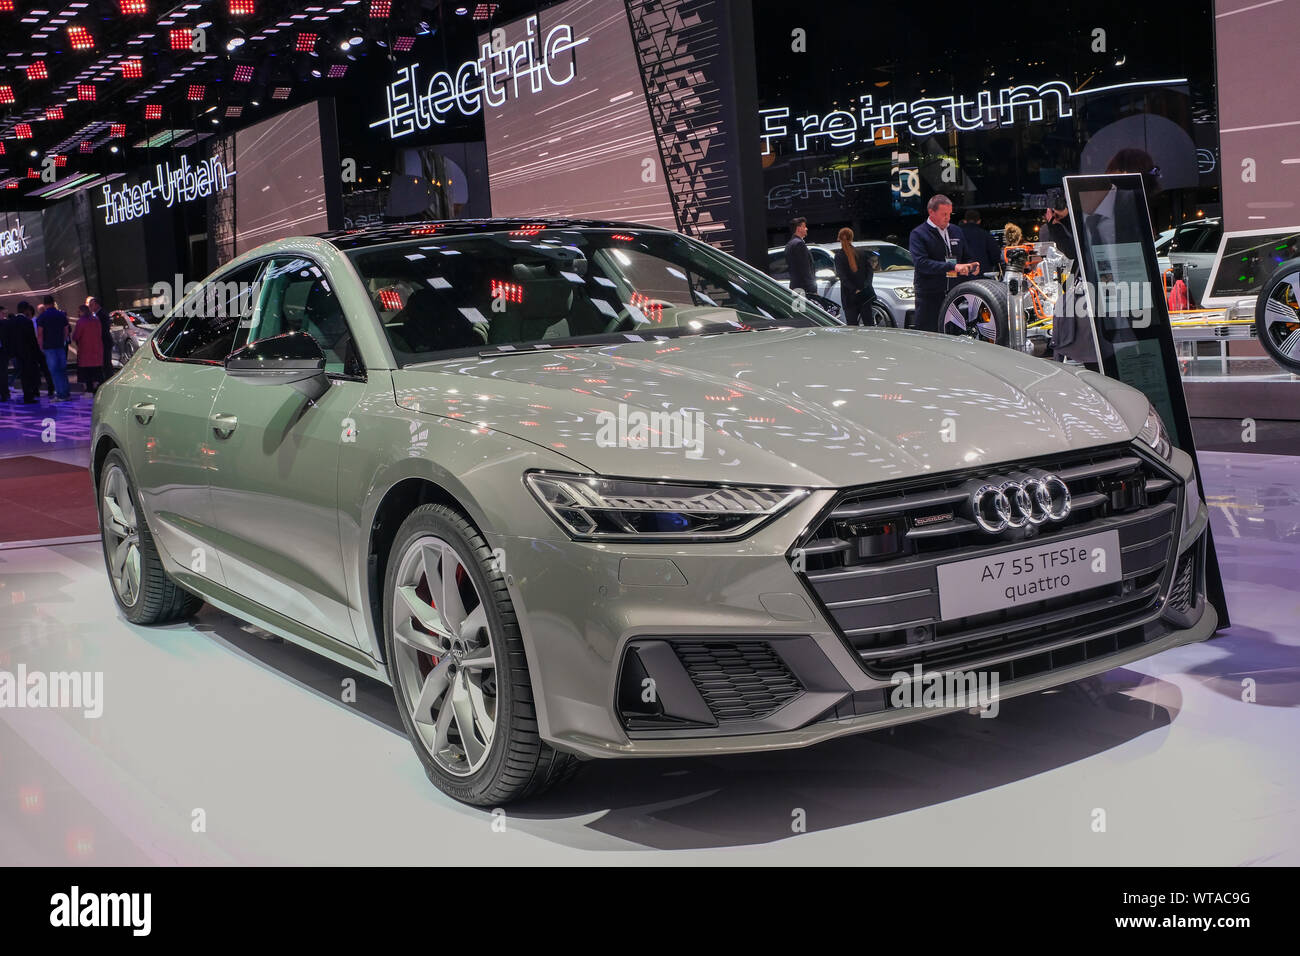 Audi Cars On Iaa 2019 International Automobile Exhibition Frankfurt Am Main Germany Stock Photo Alamy